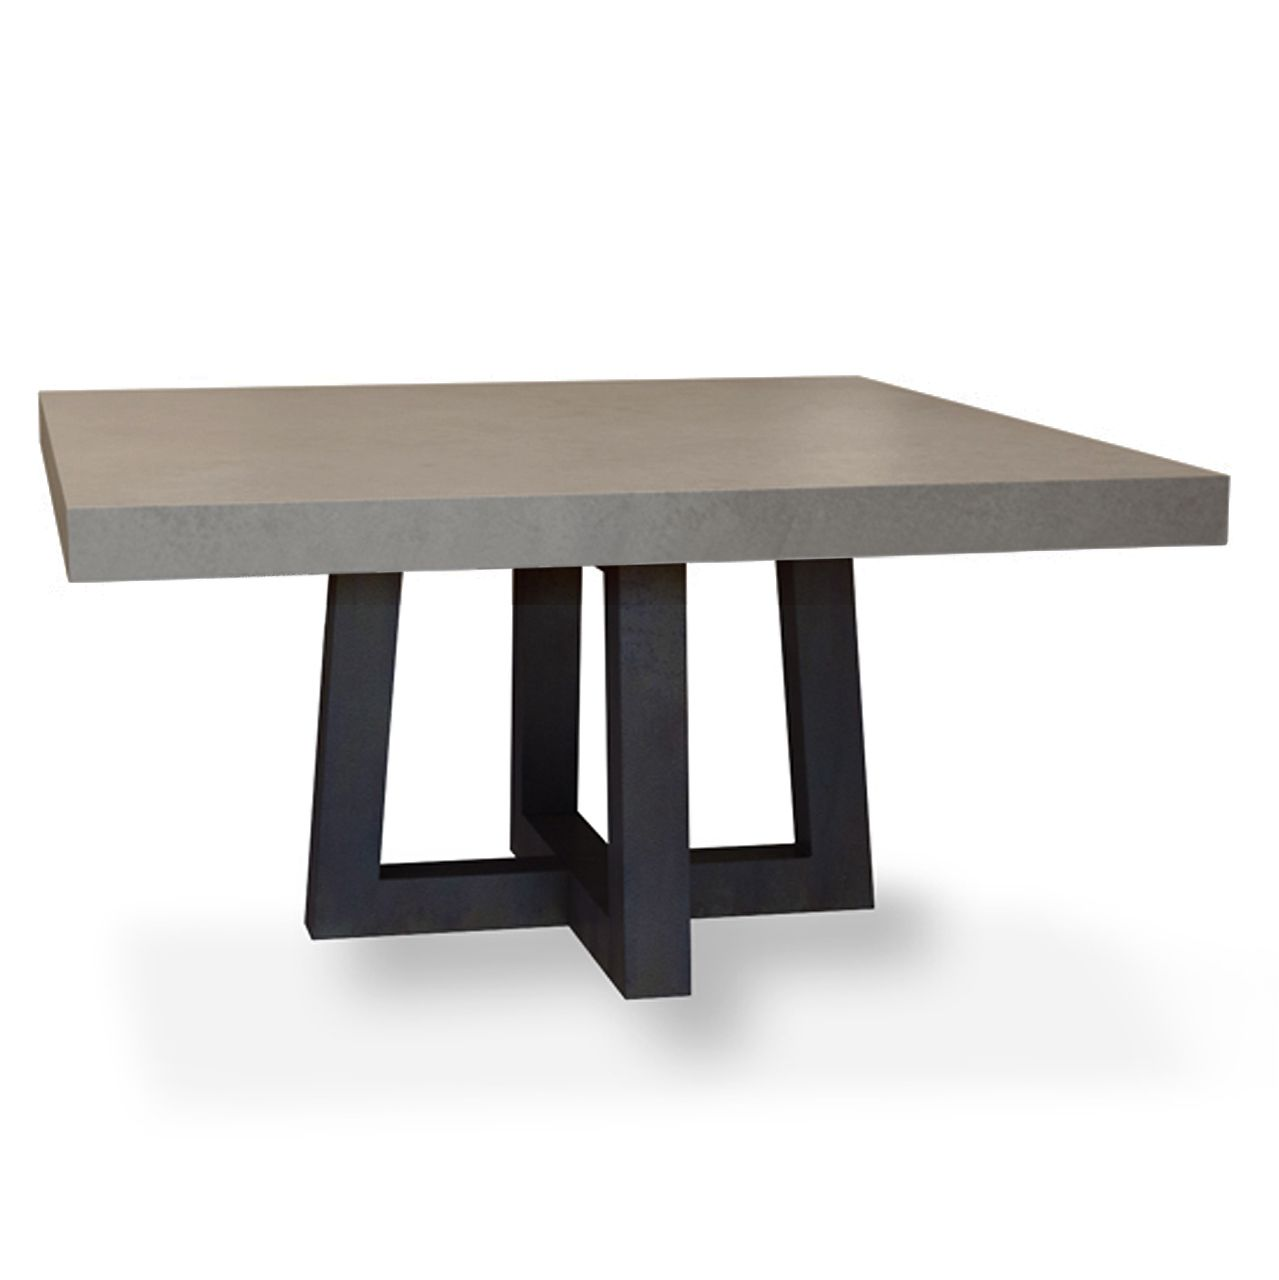 Torre Square Concrete Dining Table Concrete Dining Table Round